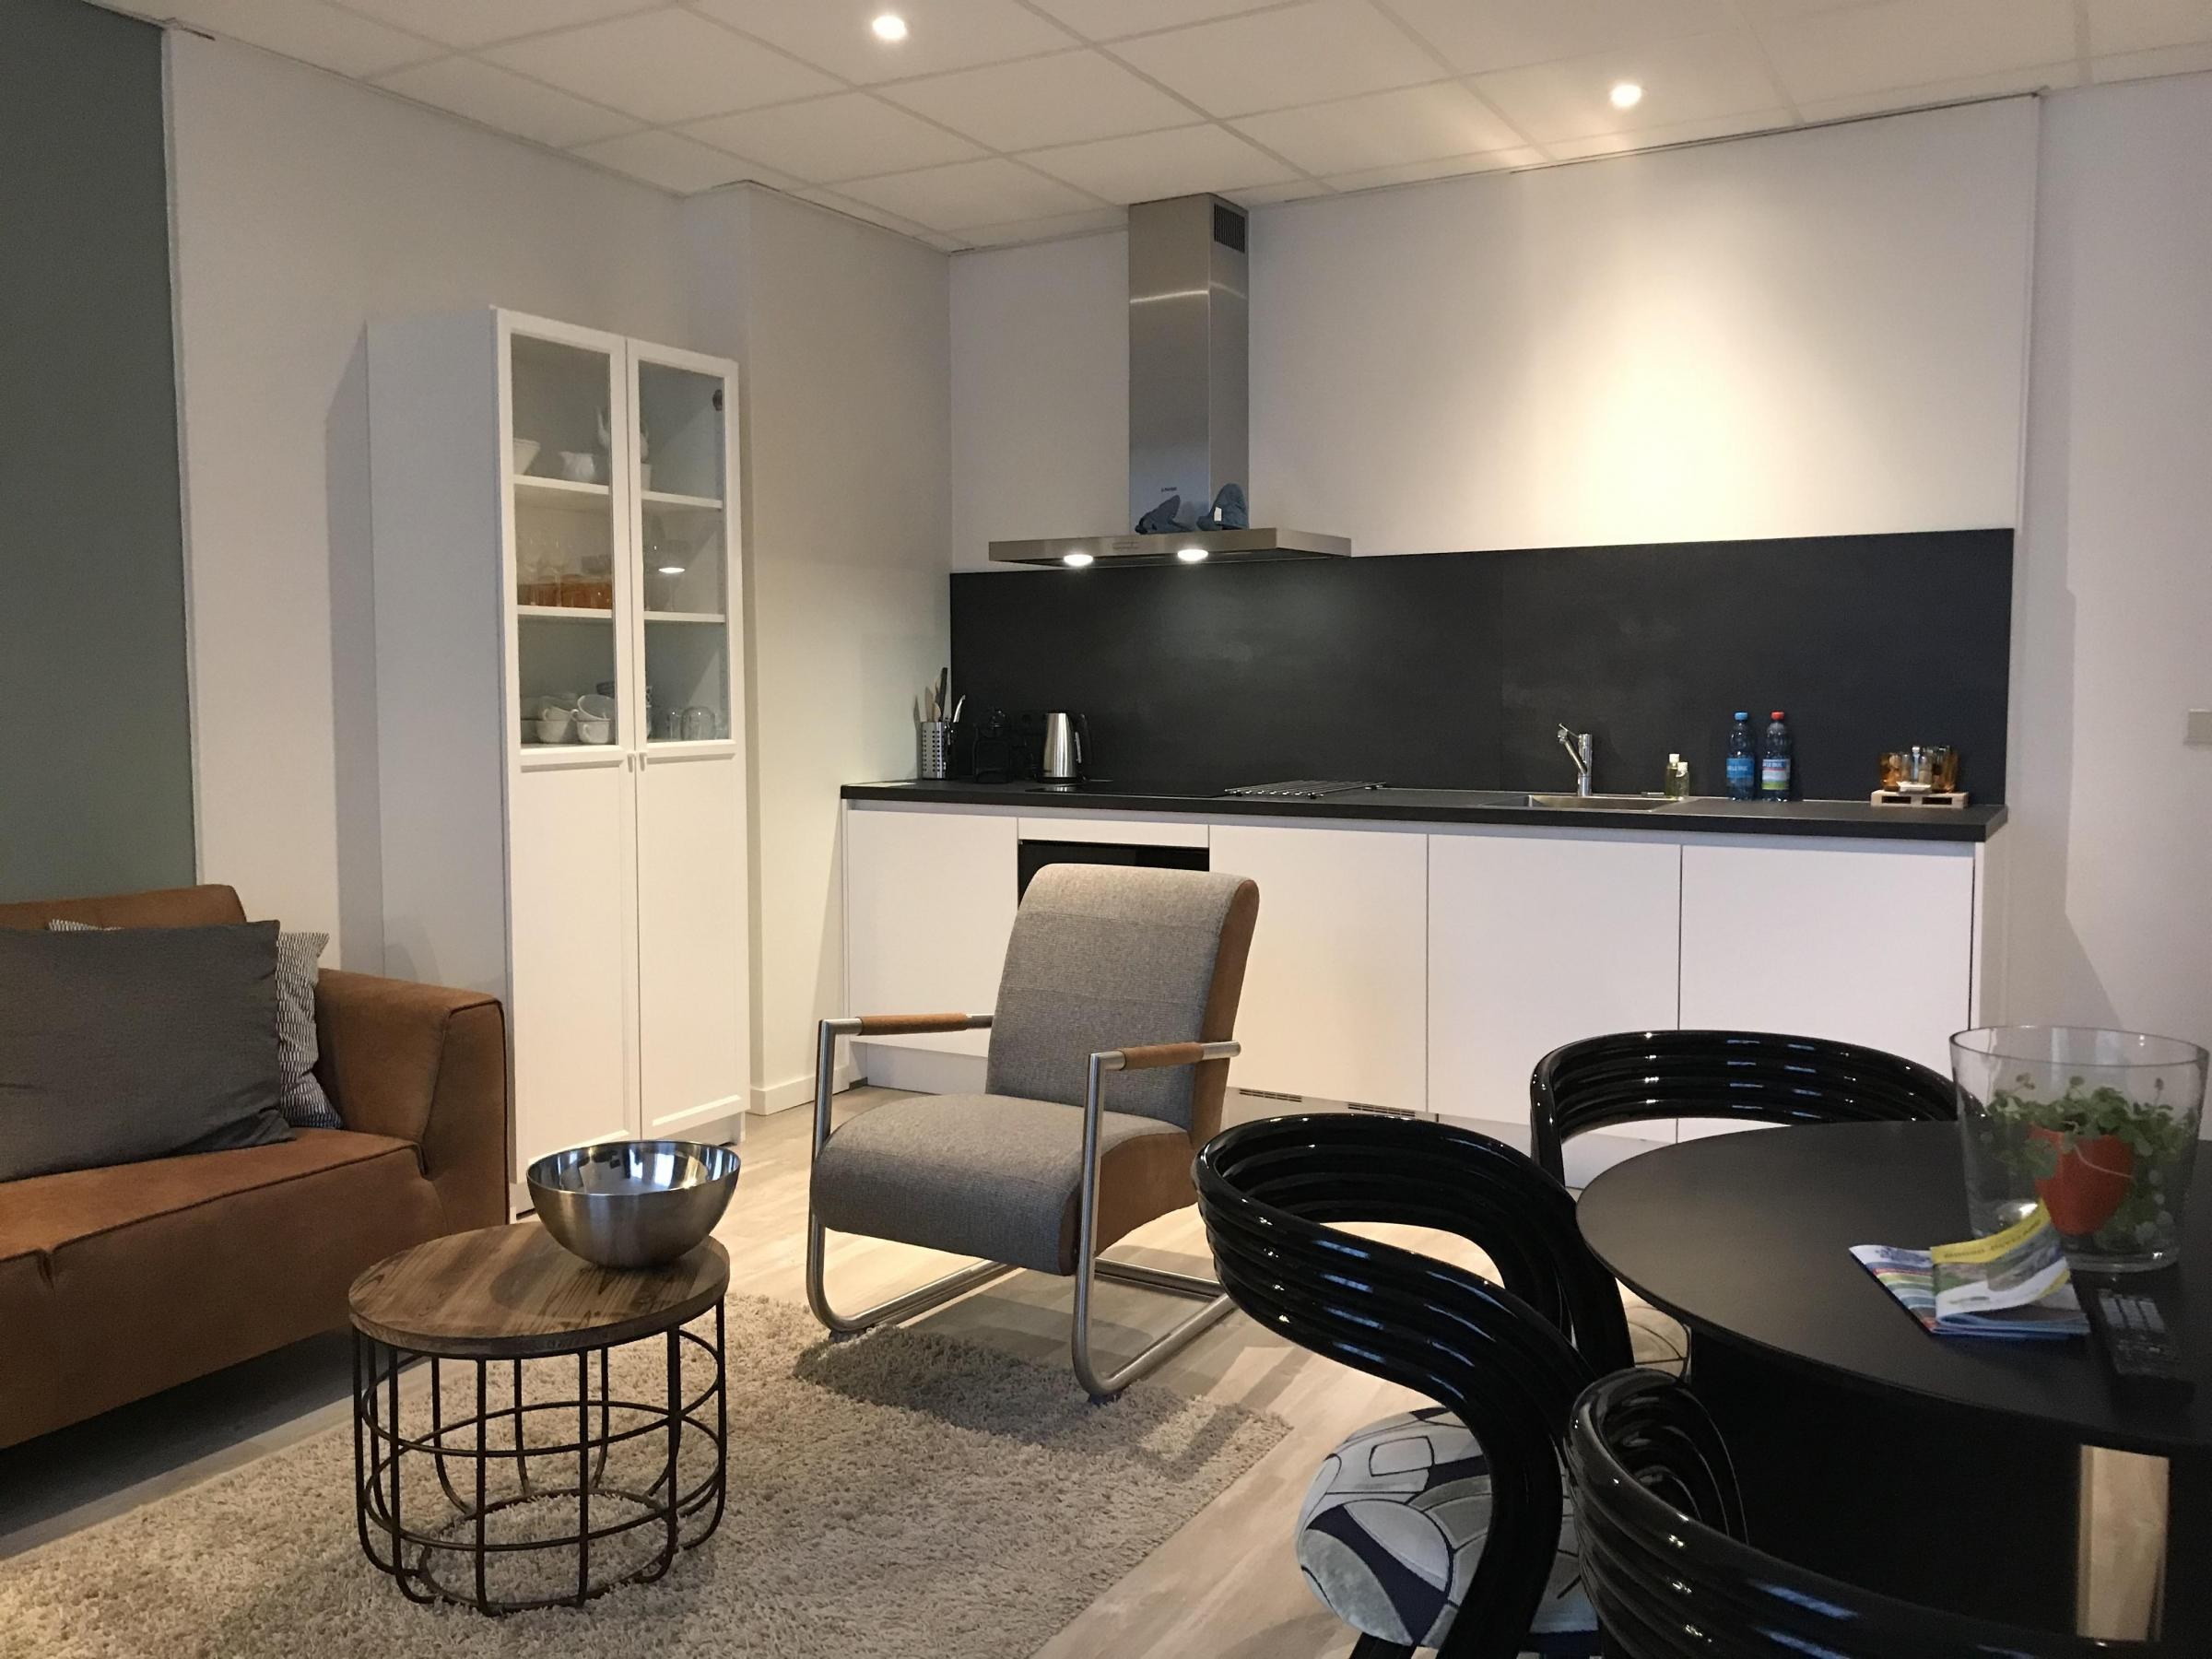 Apartment Deluxe Comfort Kortgene - 4 persons